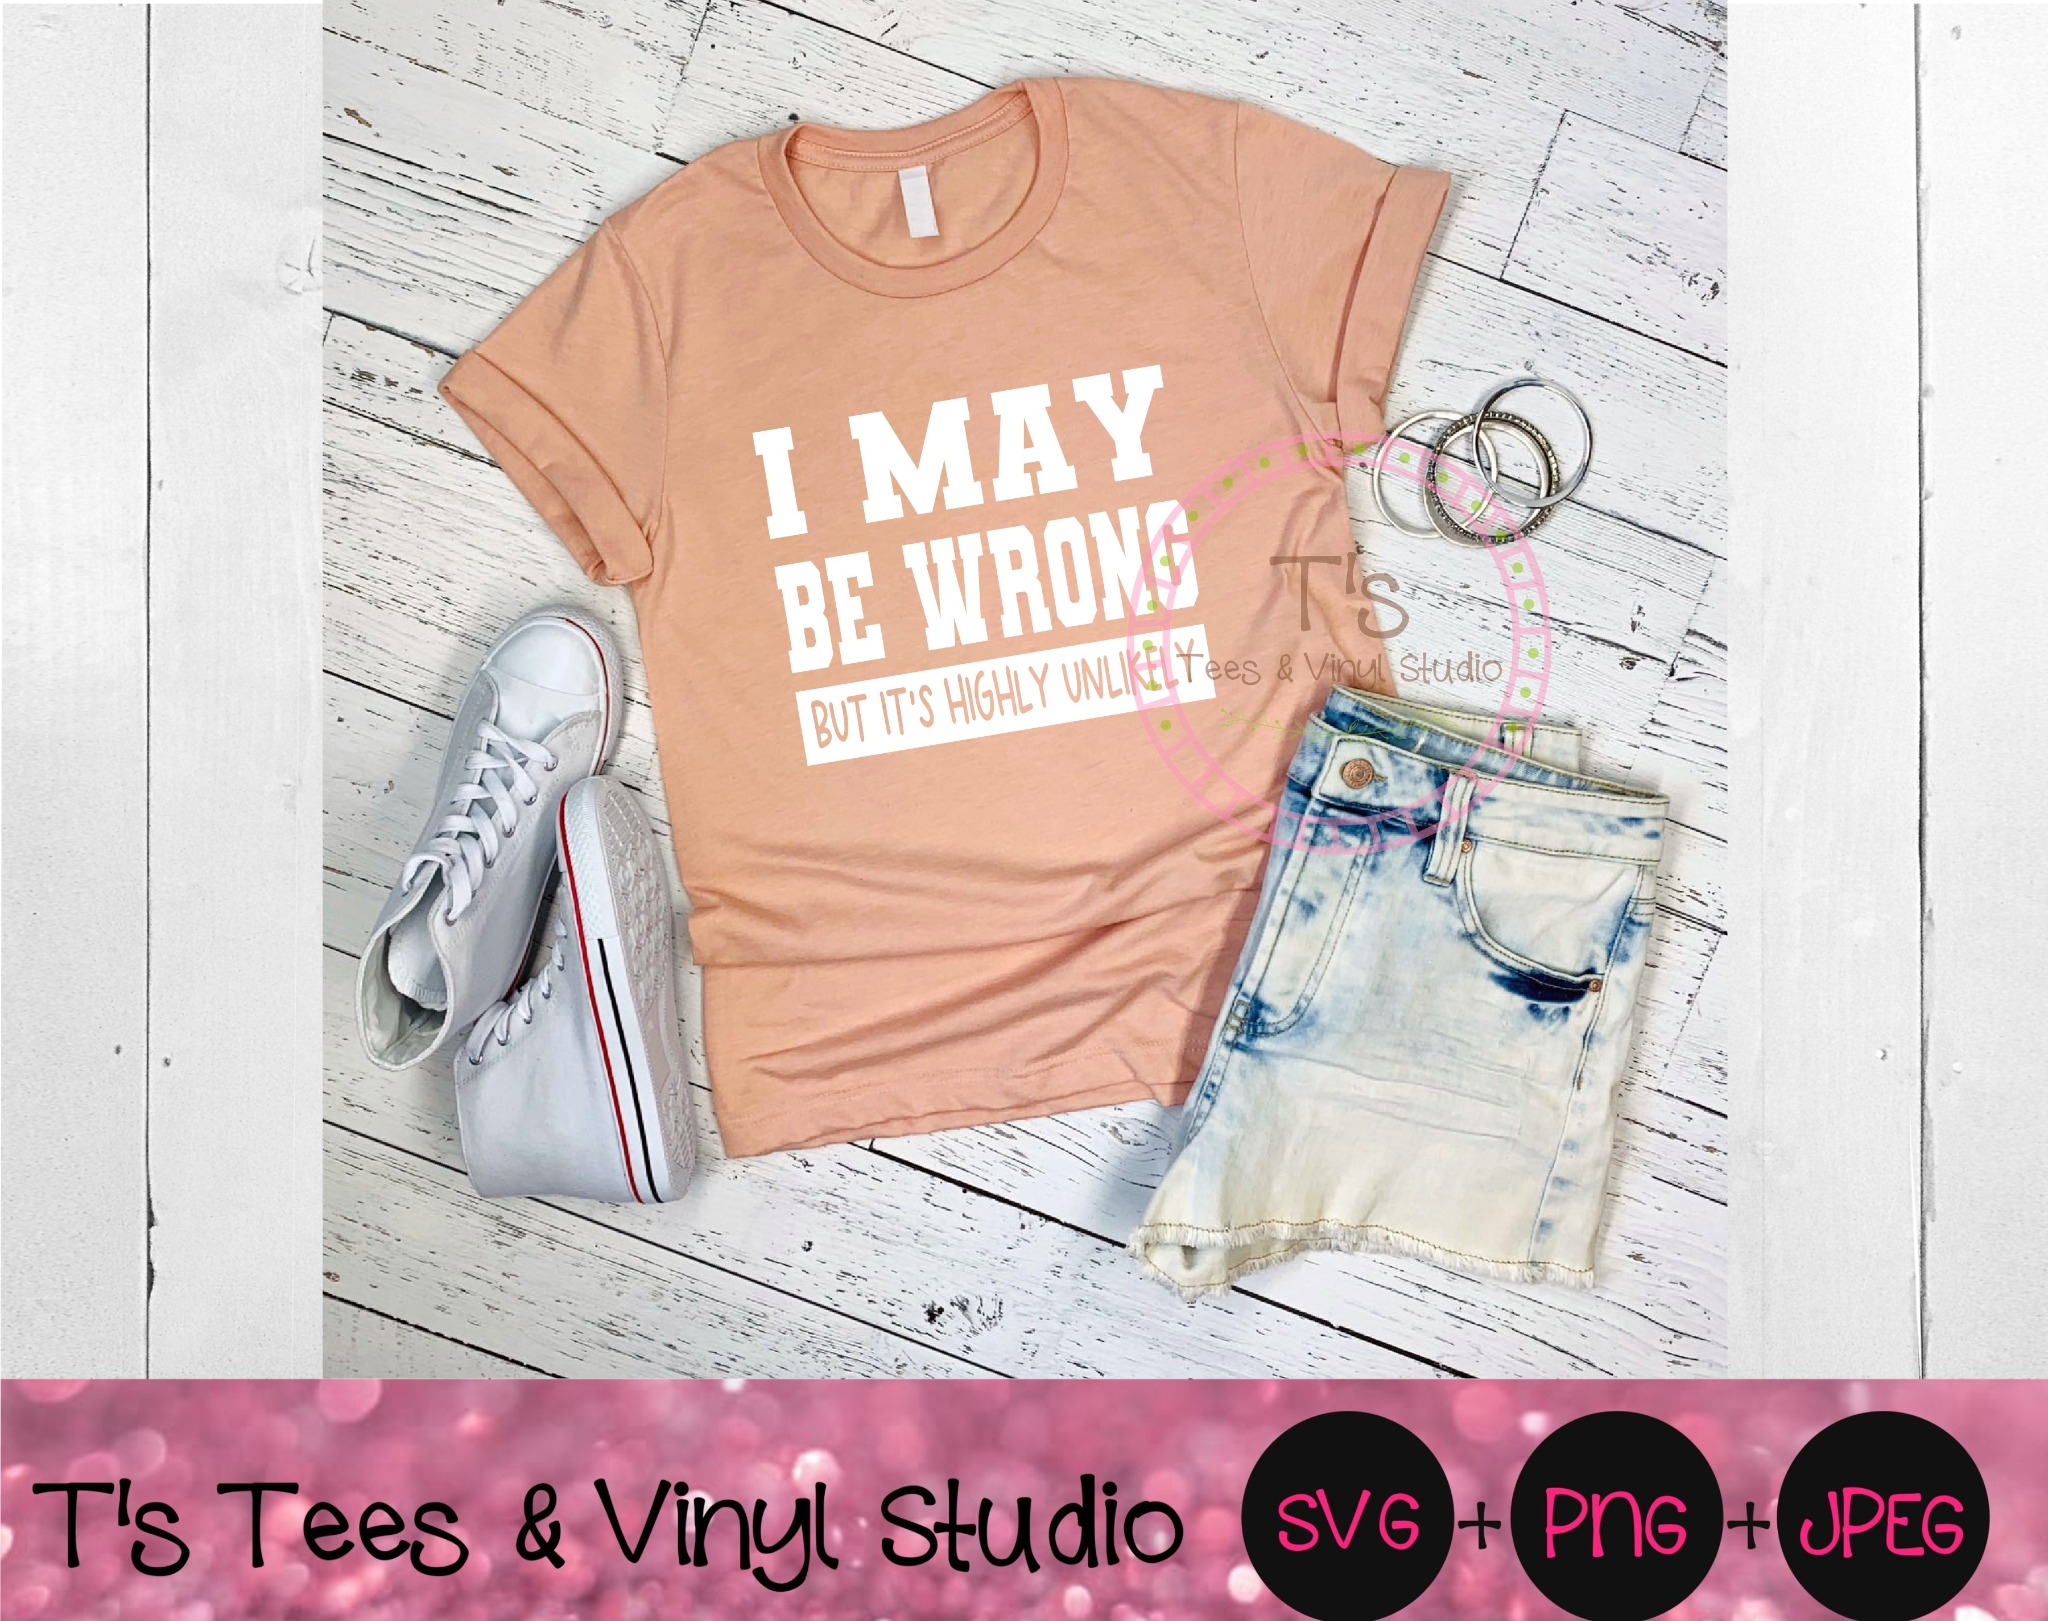 I May Be Wrong, But It's Highly Unlikely, Always Right Svg, Funny Shirt Png, Sarcastic, Sarcasm, Wit